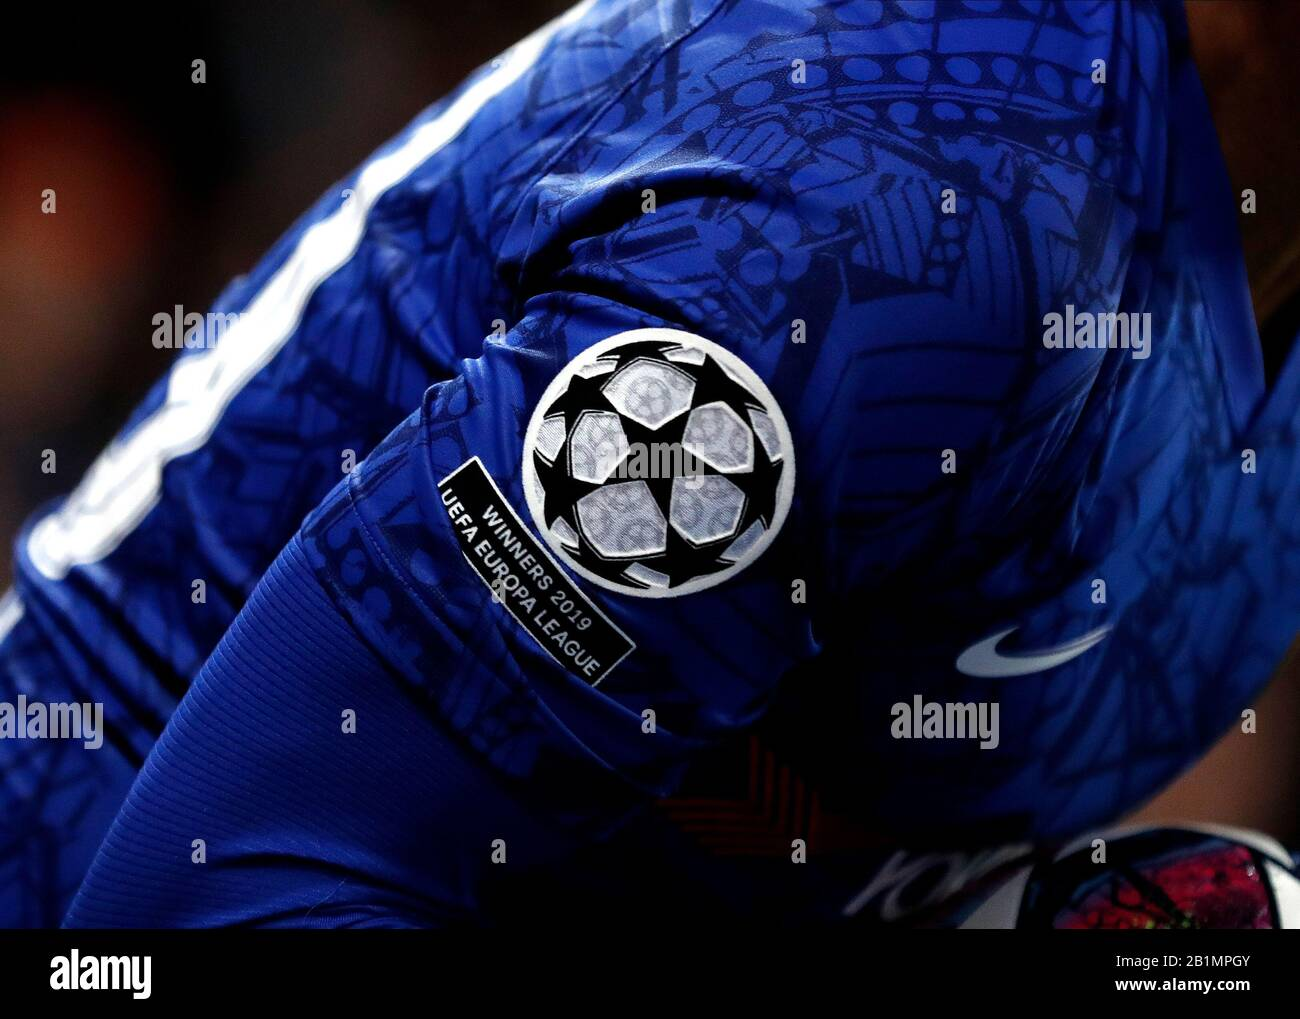 Stamford Bridge London Uk 25th Feb 2020 Uefa Champions League Football Chelsea Versus Bayern Munich Arm Patch With Winners 2019 Uefa Europa League Worn By Willian Of Chelsea Credit Action Plus Sports Alamy